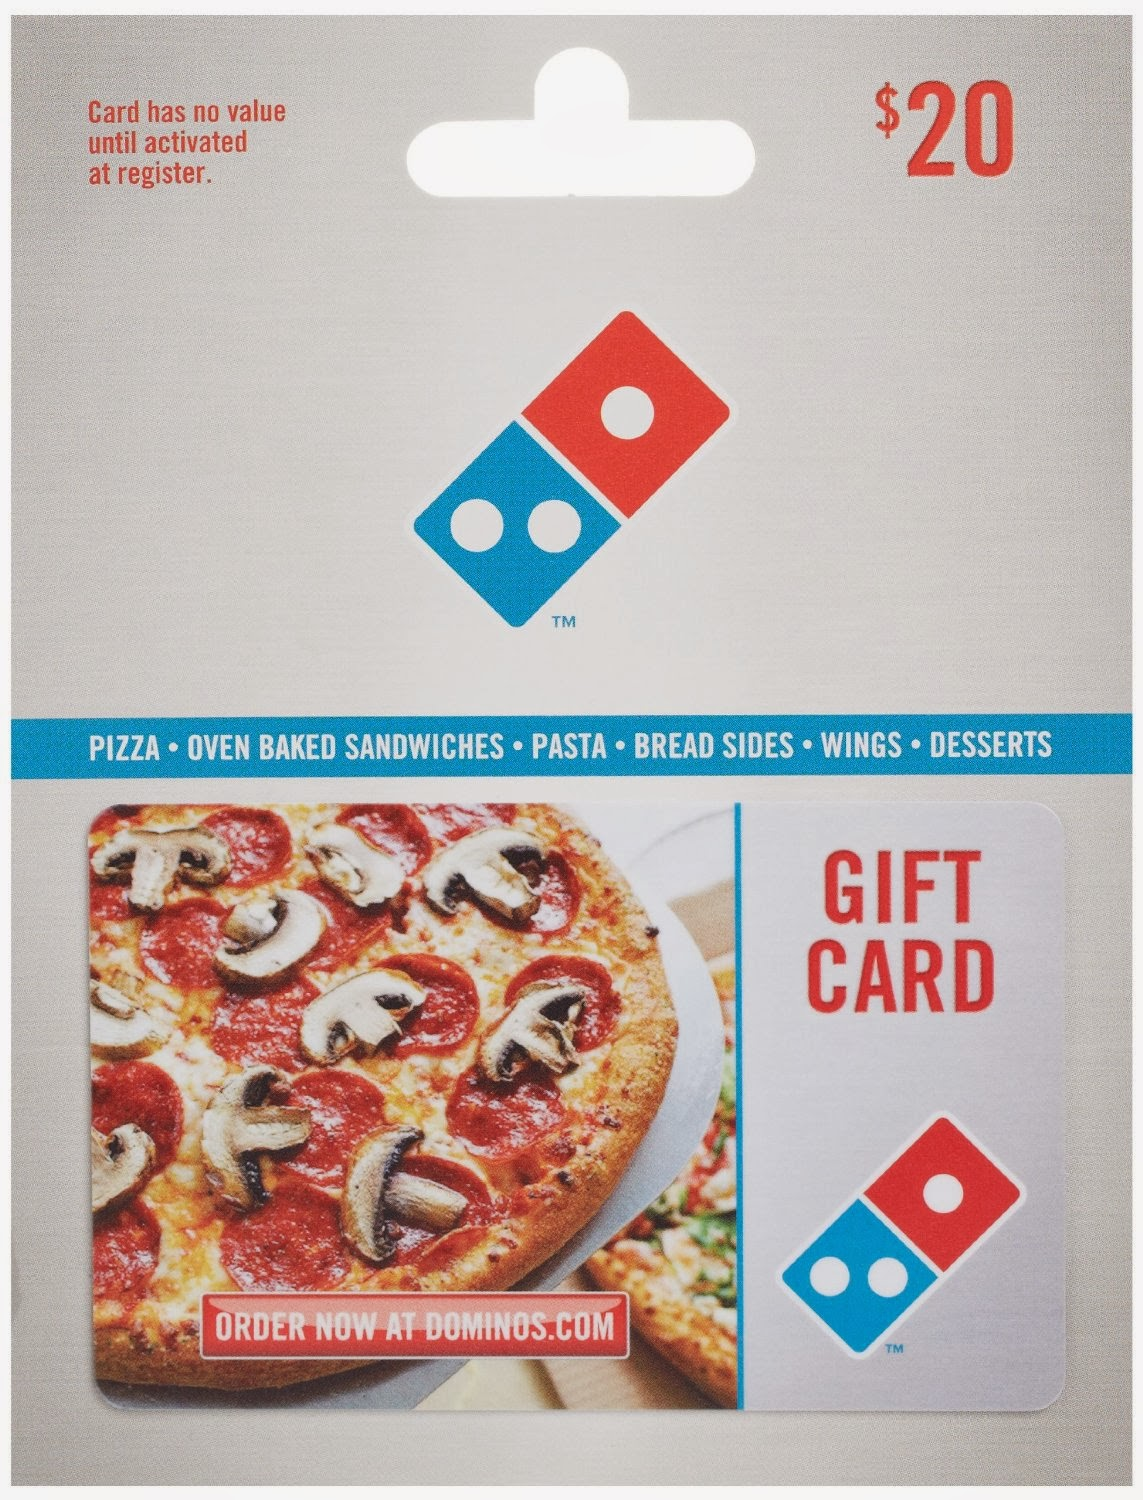 DOMINO'S PIZZA $20 GIFT CARD